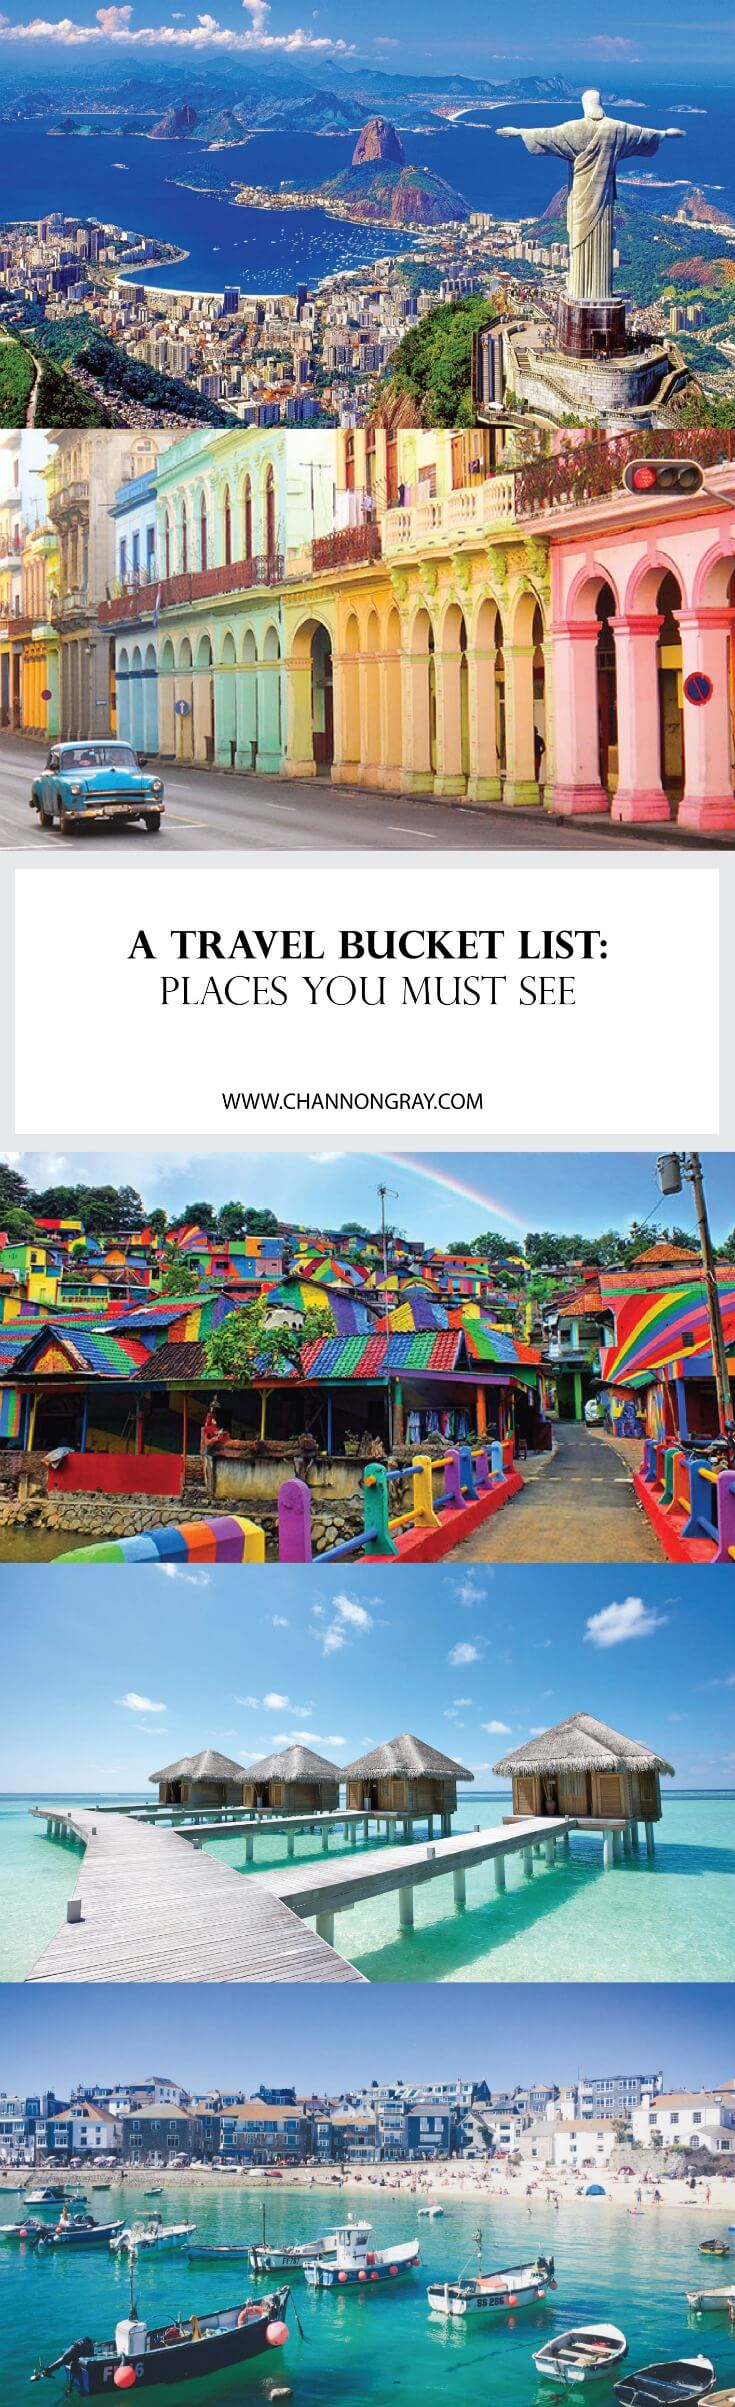 Travel Bucket List 15 Must See Places Countries Around The World